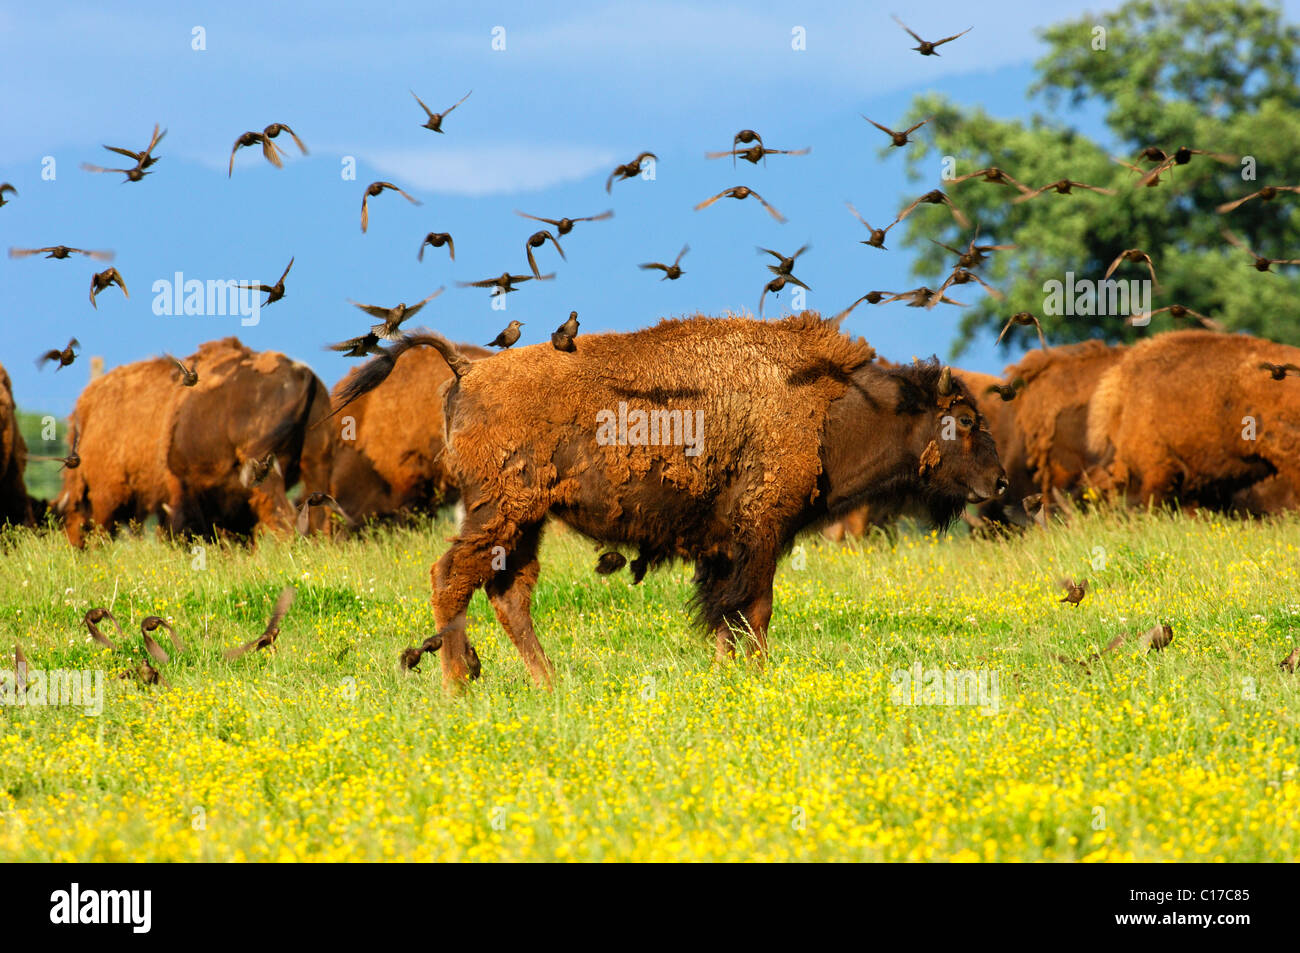 A flock of birds settling on an American Bison (Bison bison), in search of vermin in winter coat - Stock Image